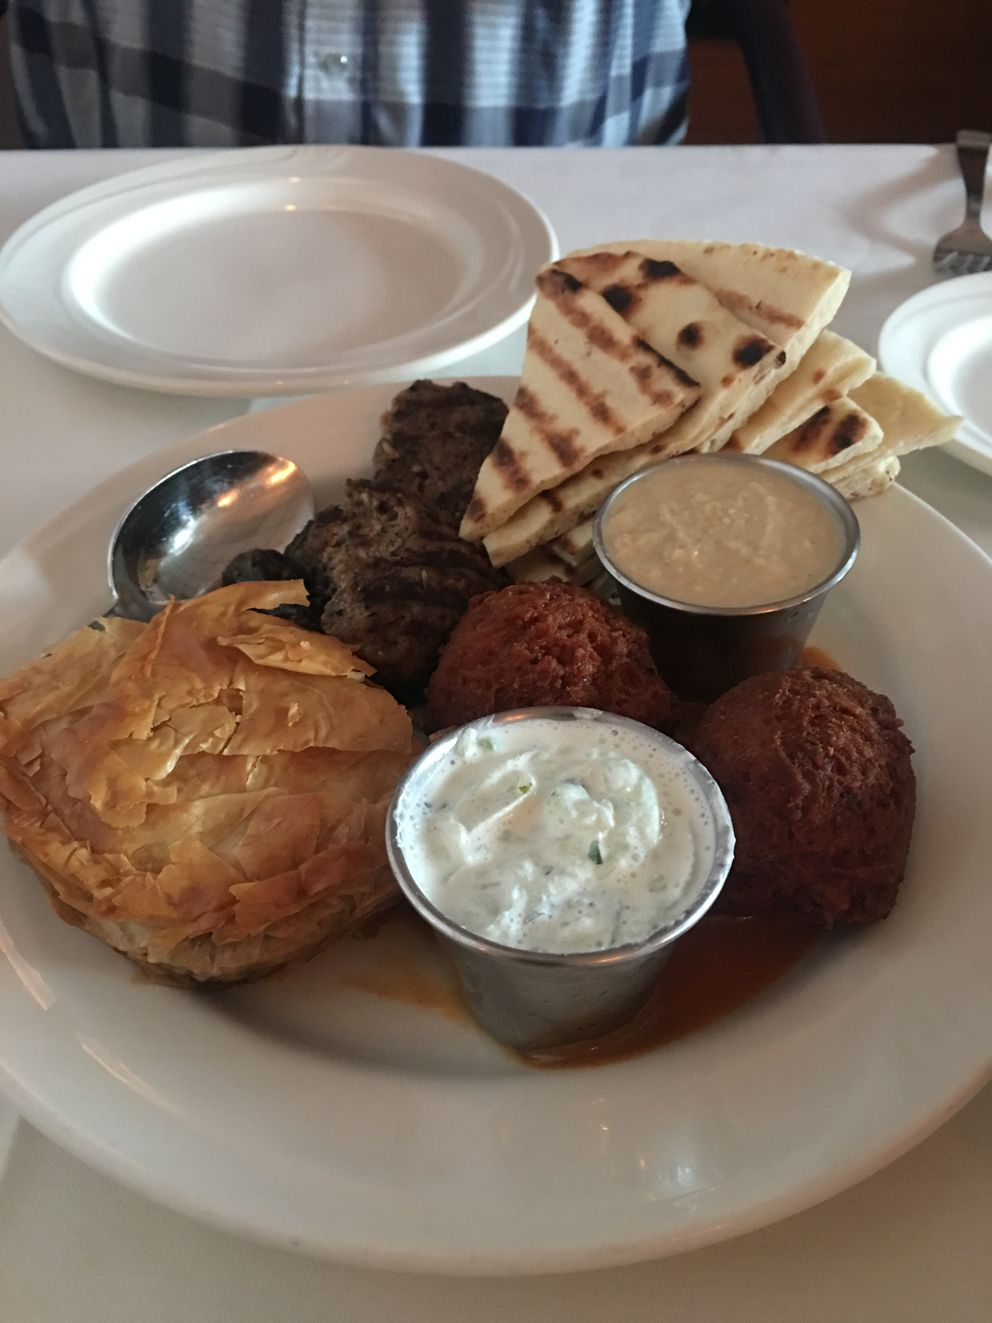 The sampler plate at Aladdin's includes falafel, hummus, tzatziki, spanakopita, kefta and dolma. (Photo by Mara Severin)